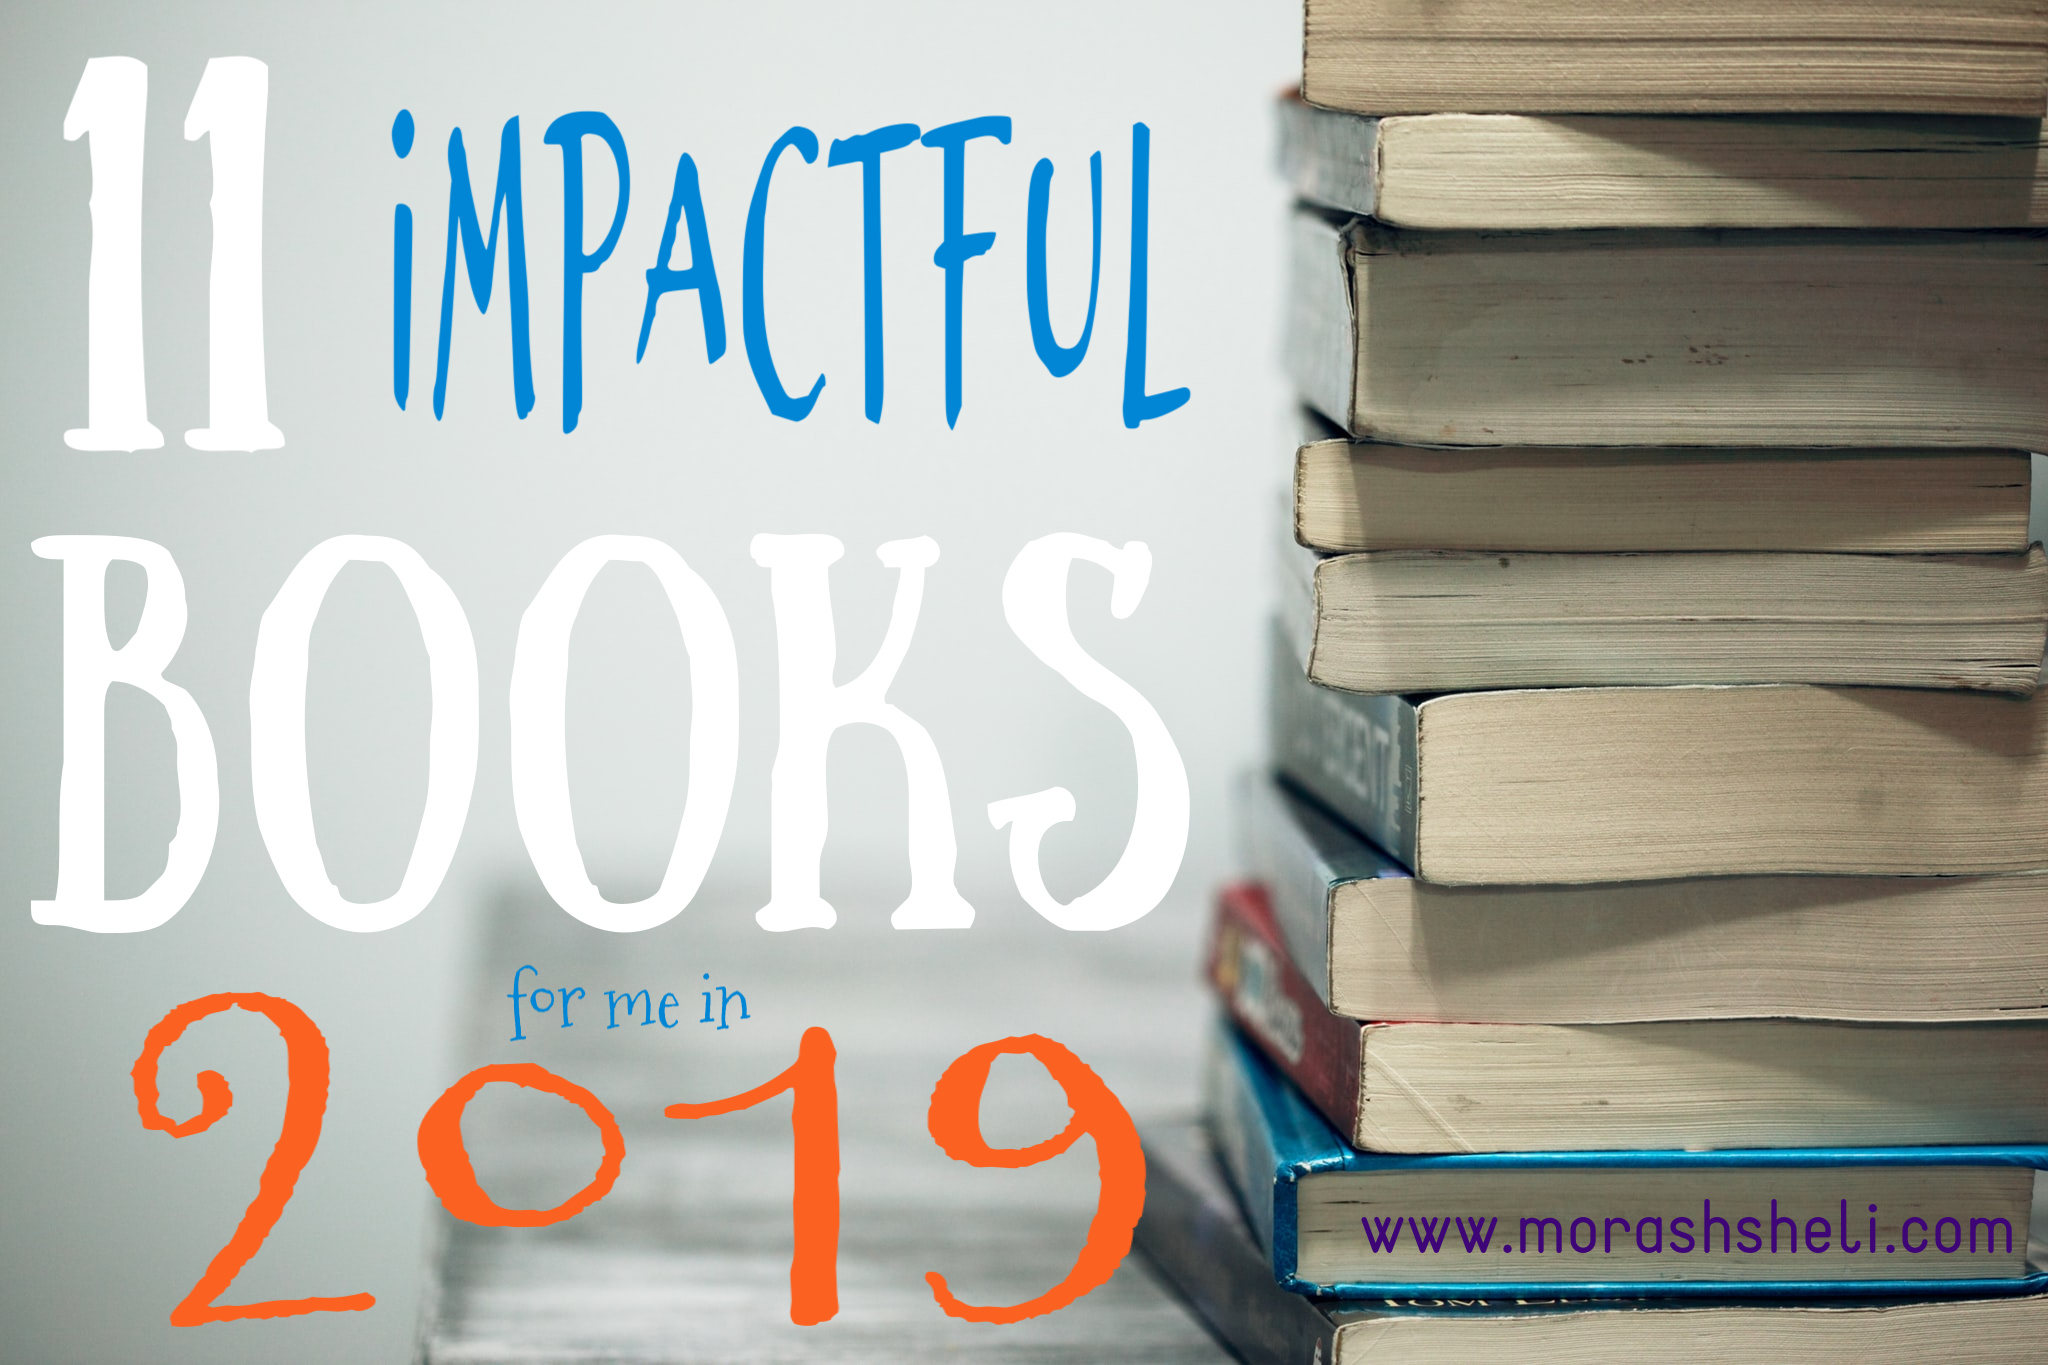 11 Impactful Books in 2019